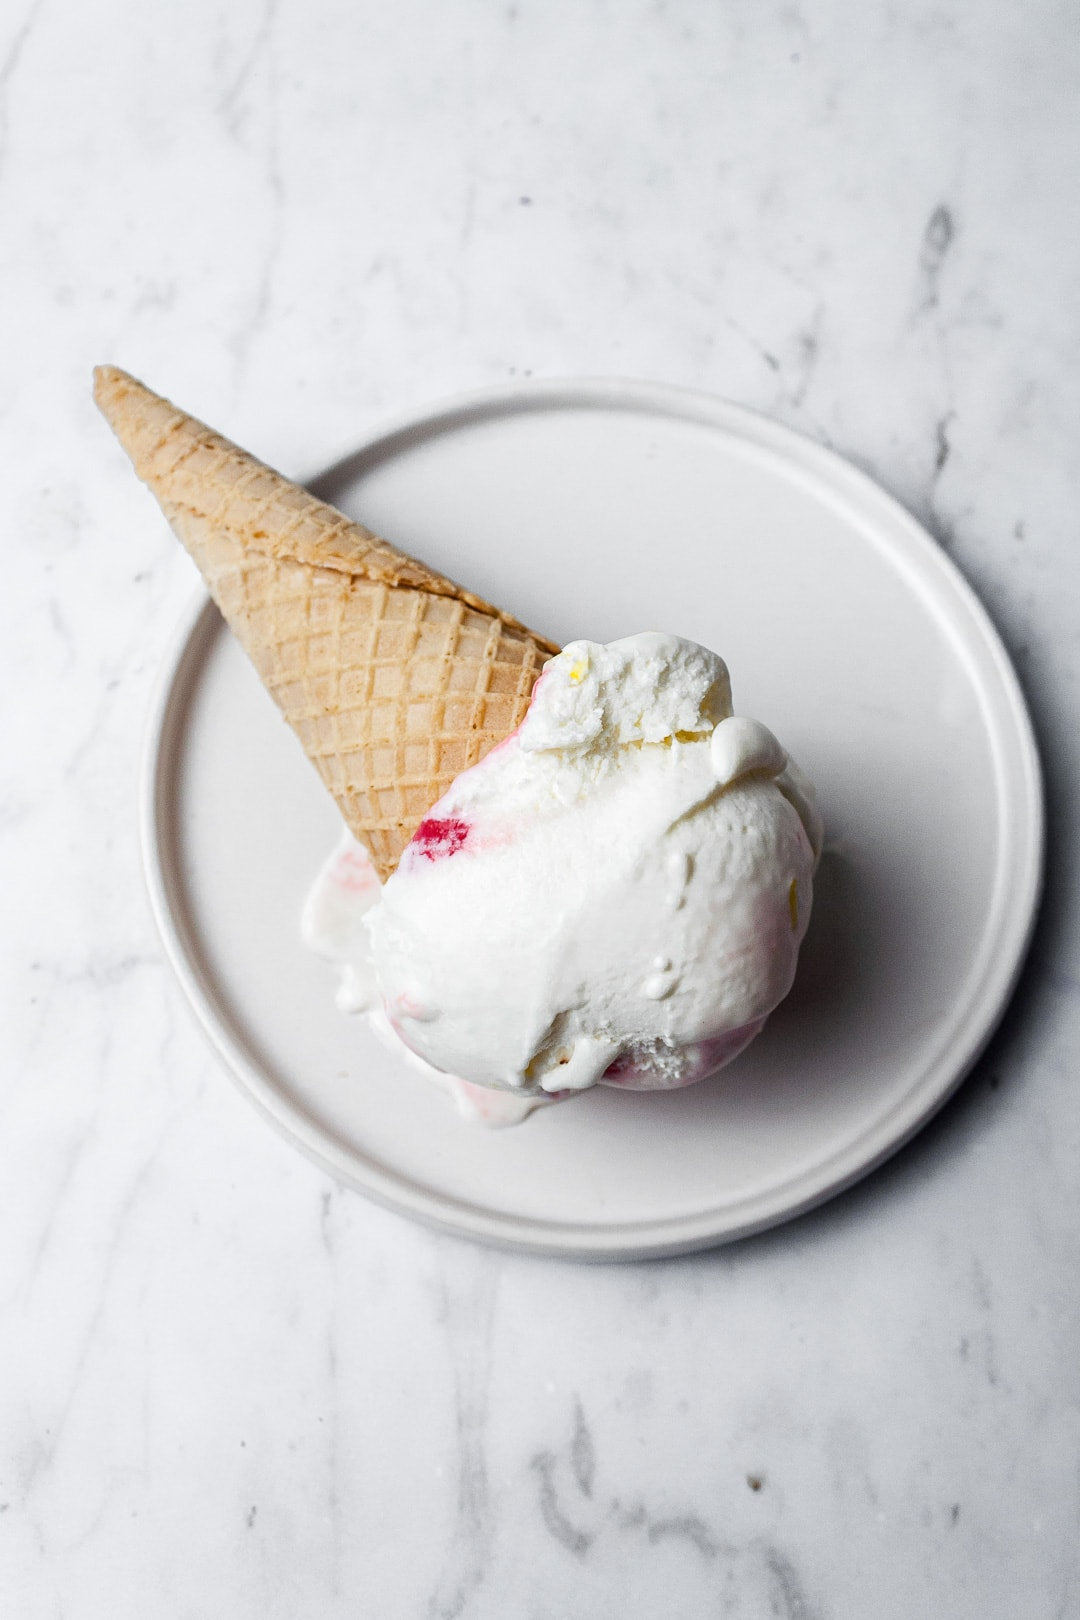 Sugar cone with scoop of ice cream on a white plate and marble background